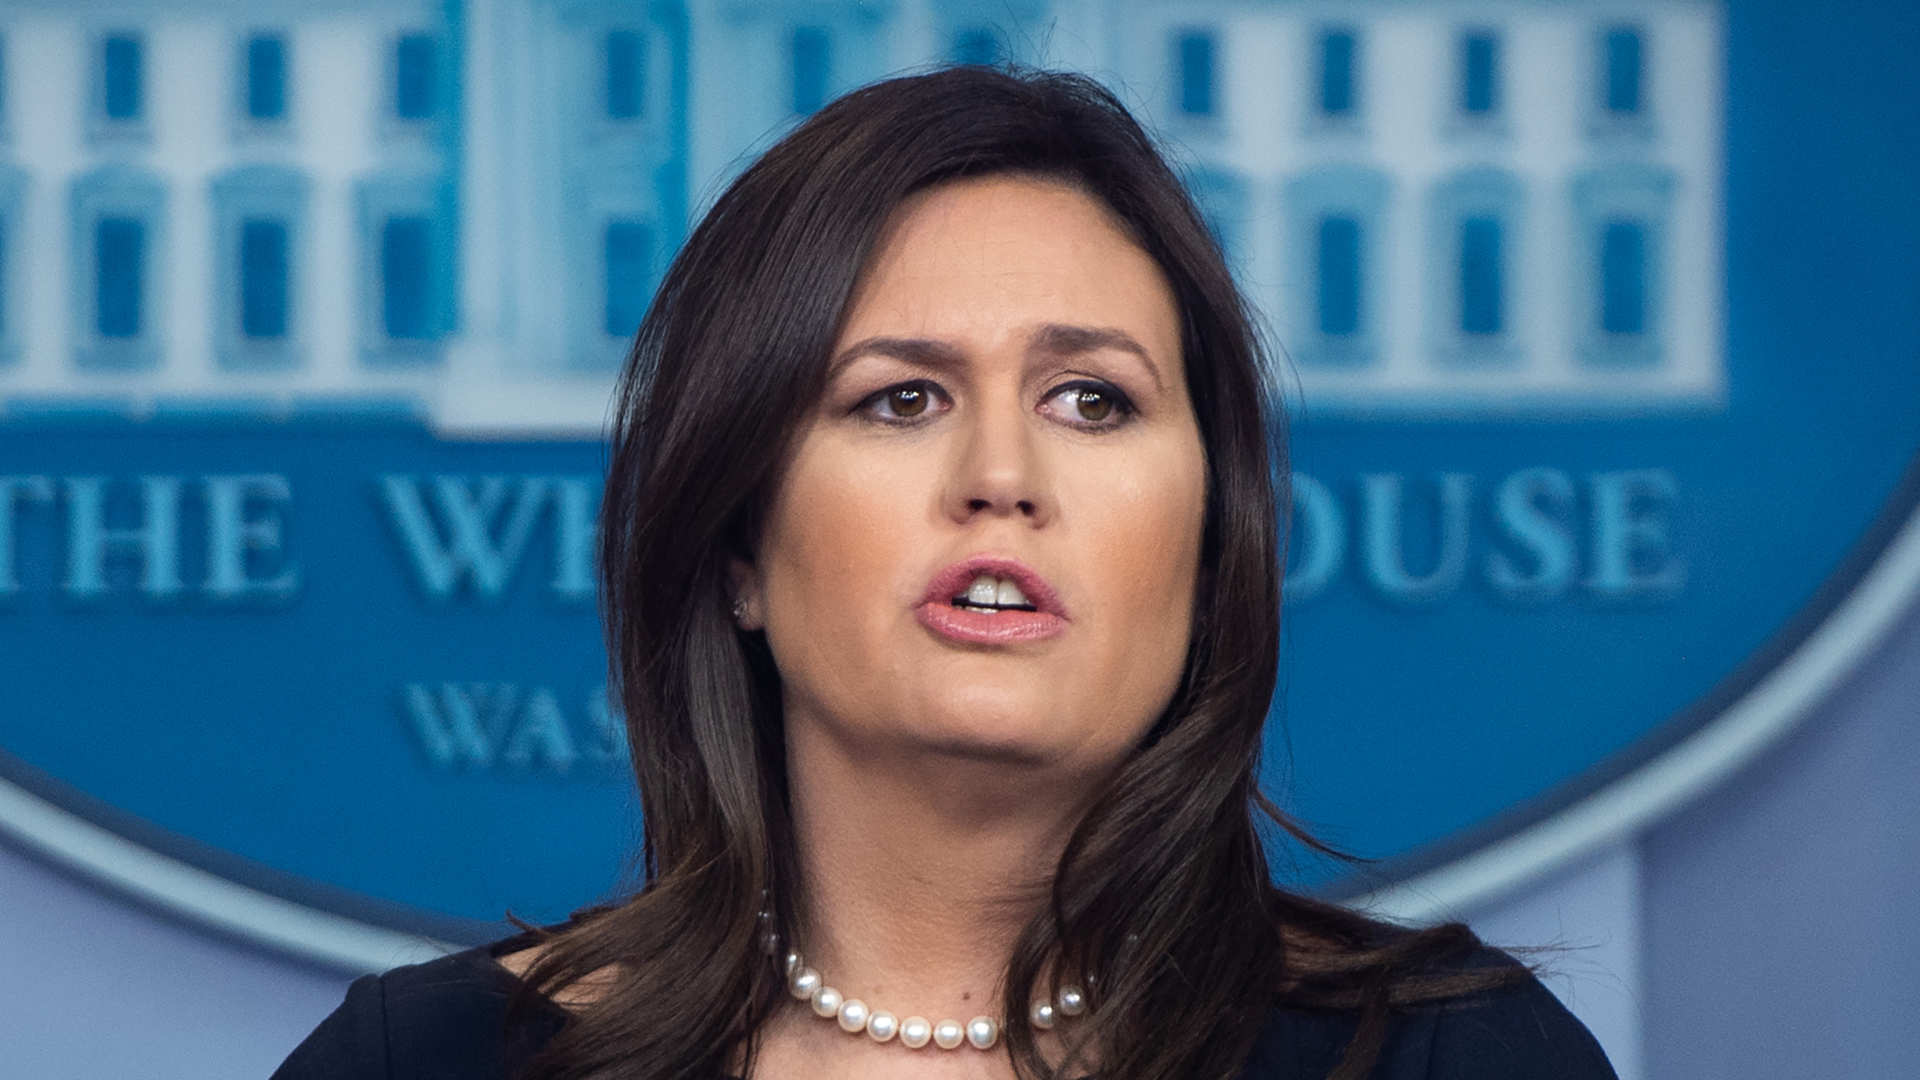 White House Press Secretary Sarah Huckabee Sanders speaks during a press briefing at the White House in Washington, D.C., March 11, 2019. (Credit: SAUL LOEB / AFP) (Photo credit should read SAUL LOEB/AFP/Getty Images)